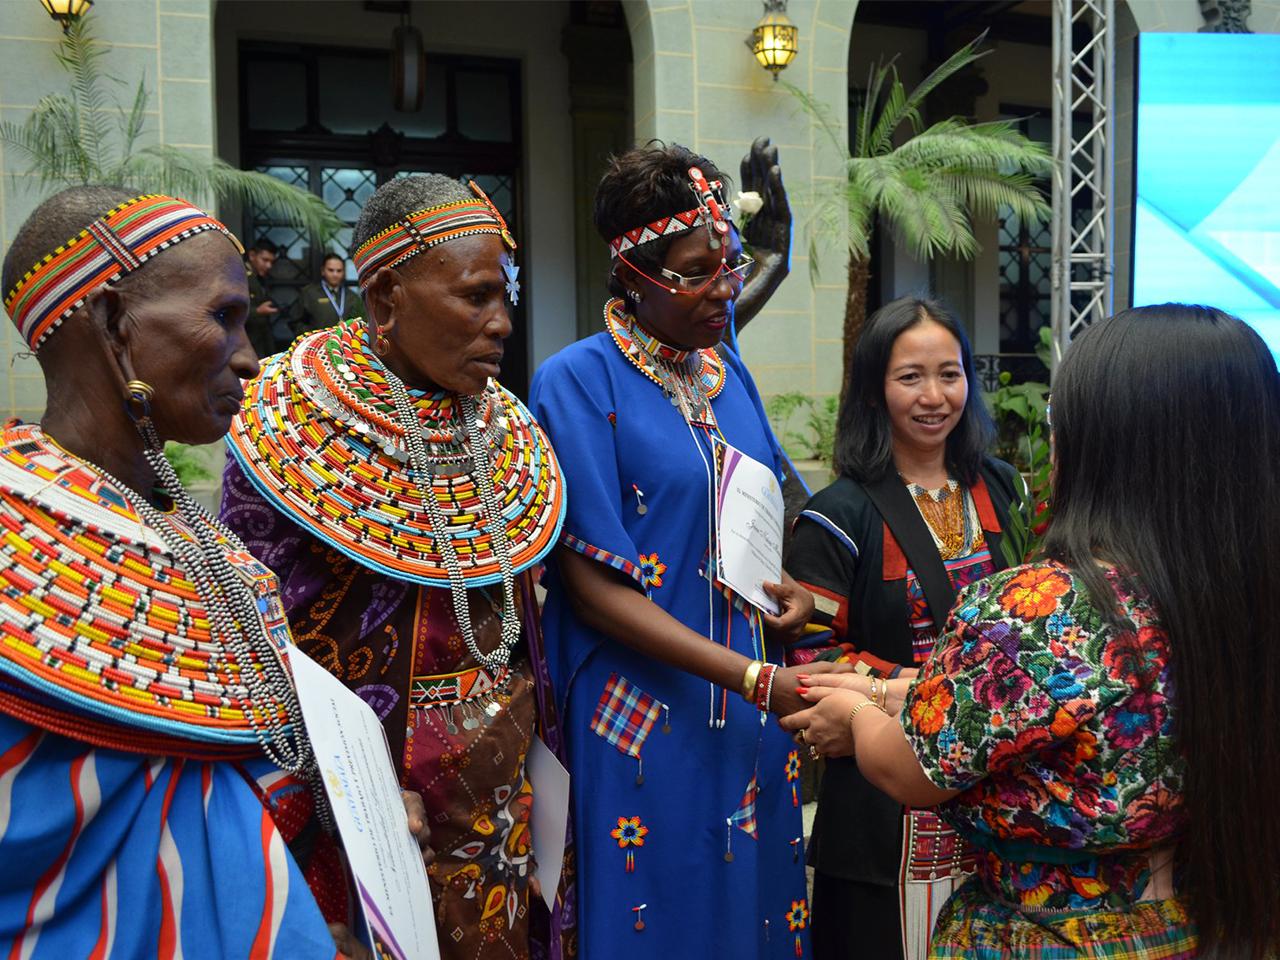 Voices of indigenous women in Africa in favor of the full exercise of their rights